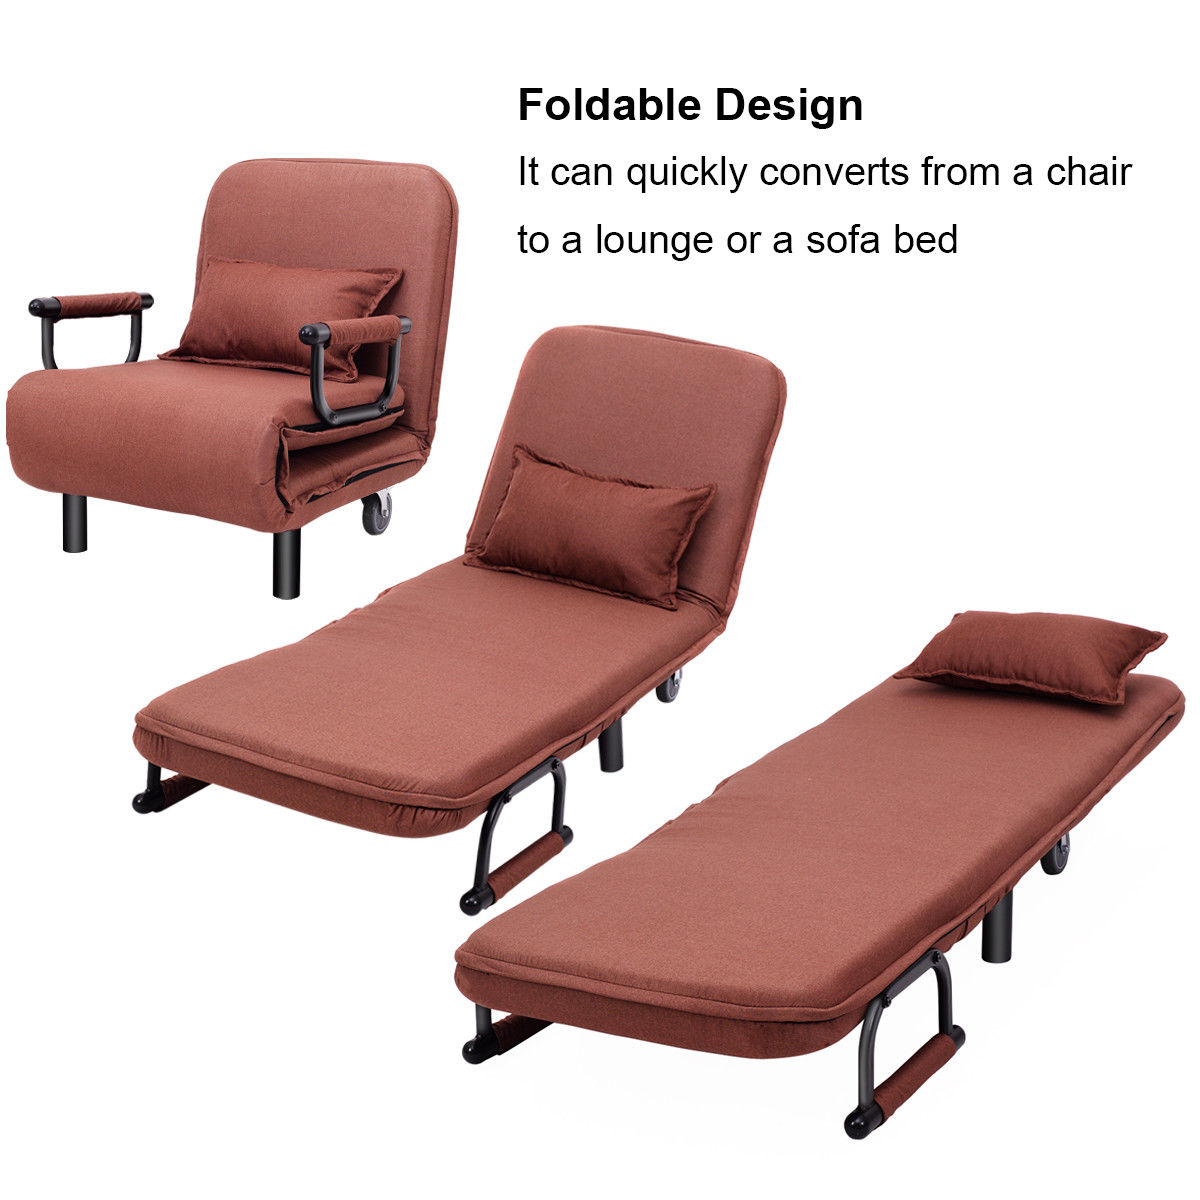 Costway Convertible Sofa Bed Folding Arm Chair Sleeper ...